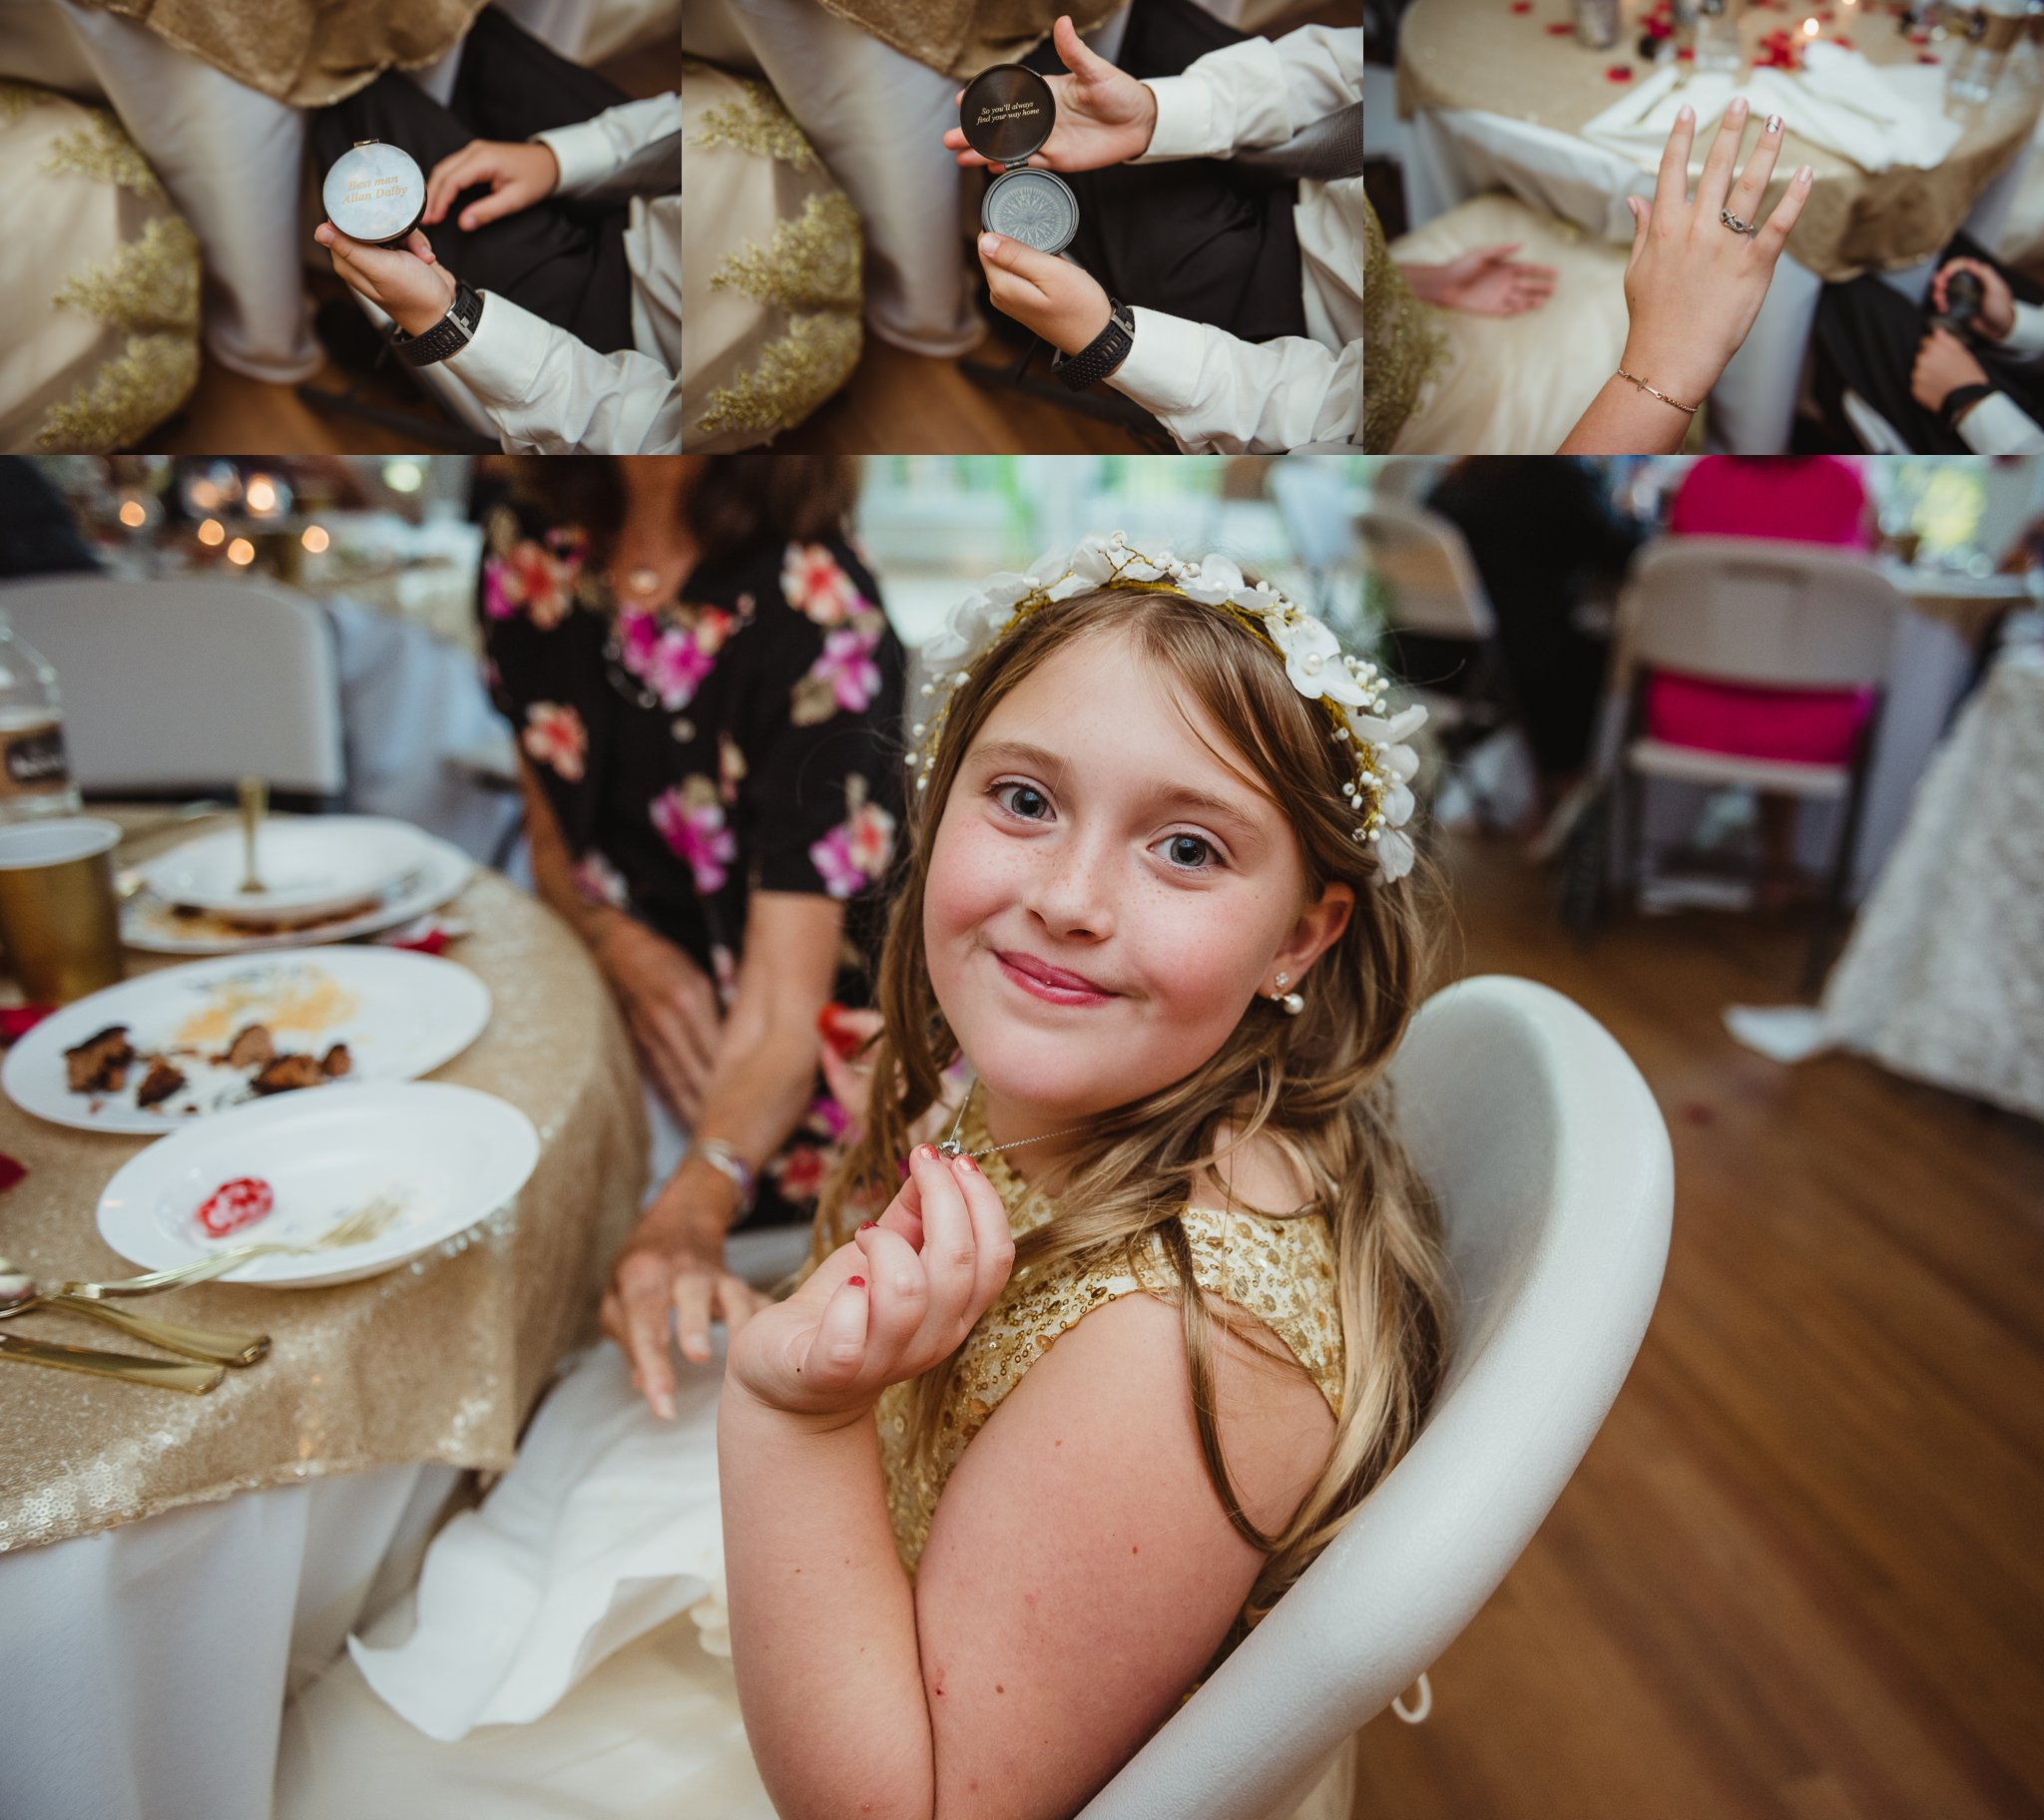 The three kids showed off their gifts they received during the wedding ceremony in Raleigh, photos by Rose Trail Images.